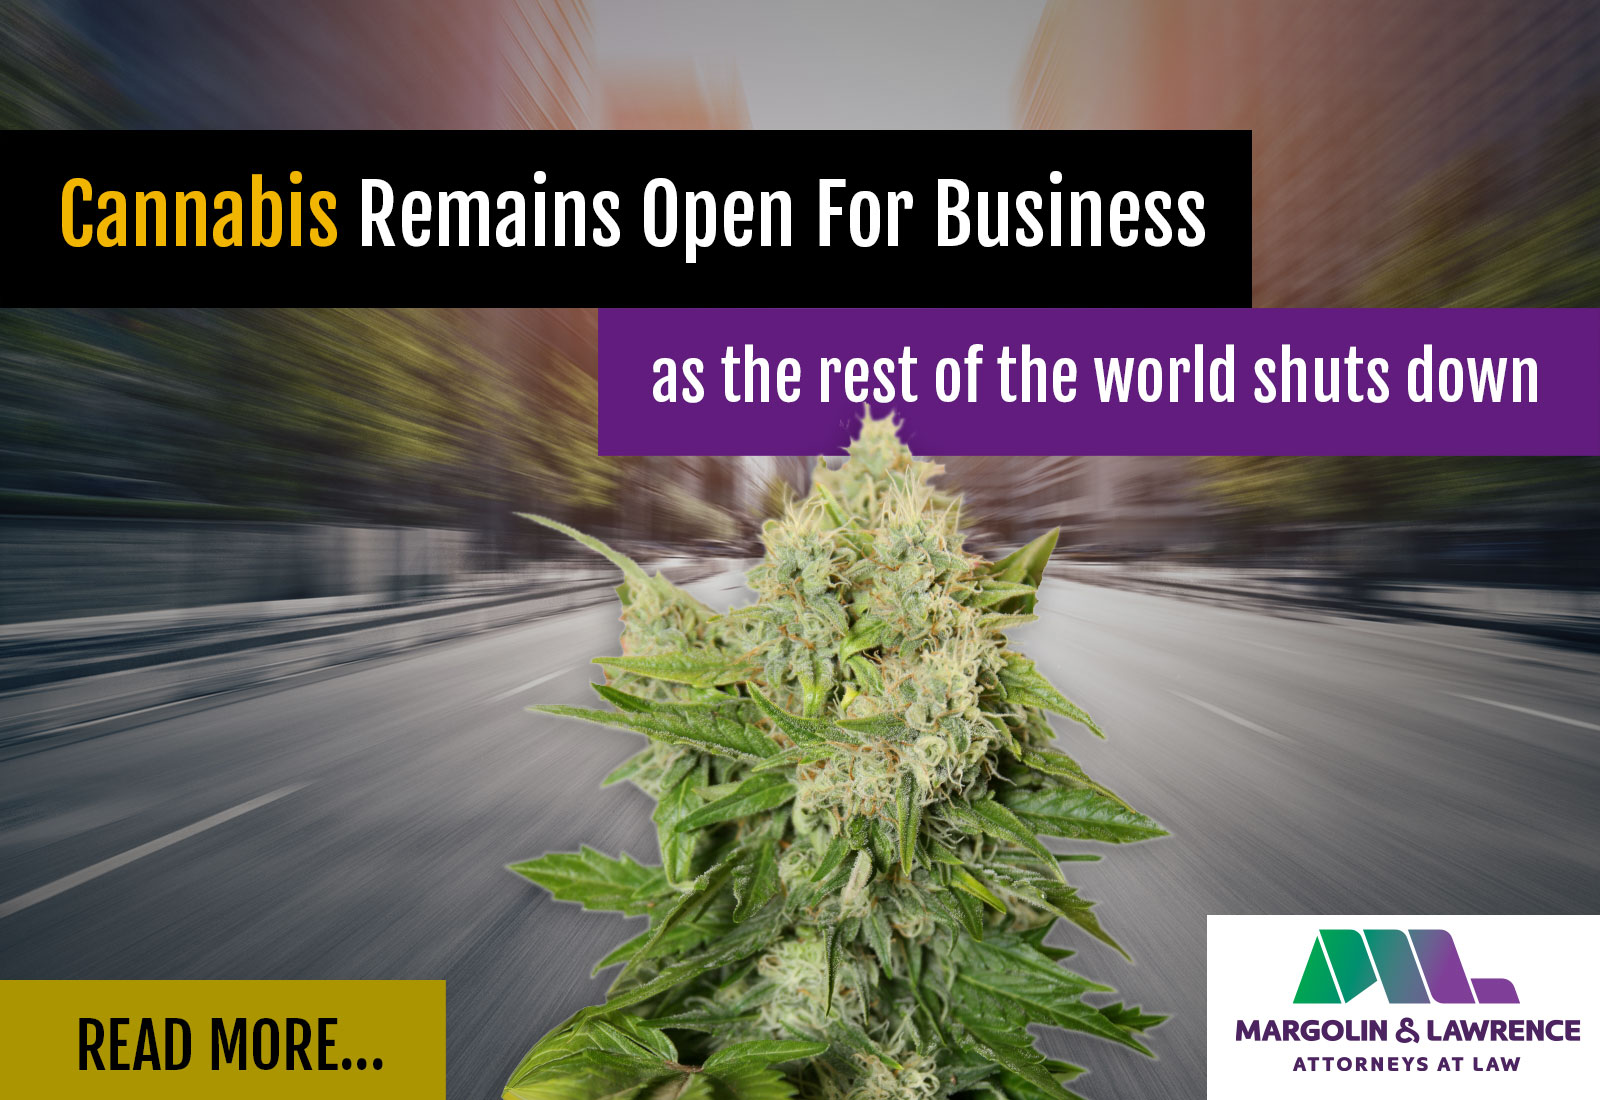 Cannabis Remains Open for Business